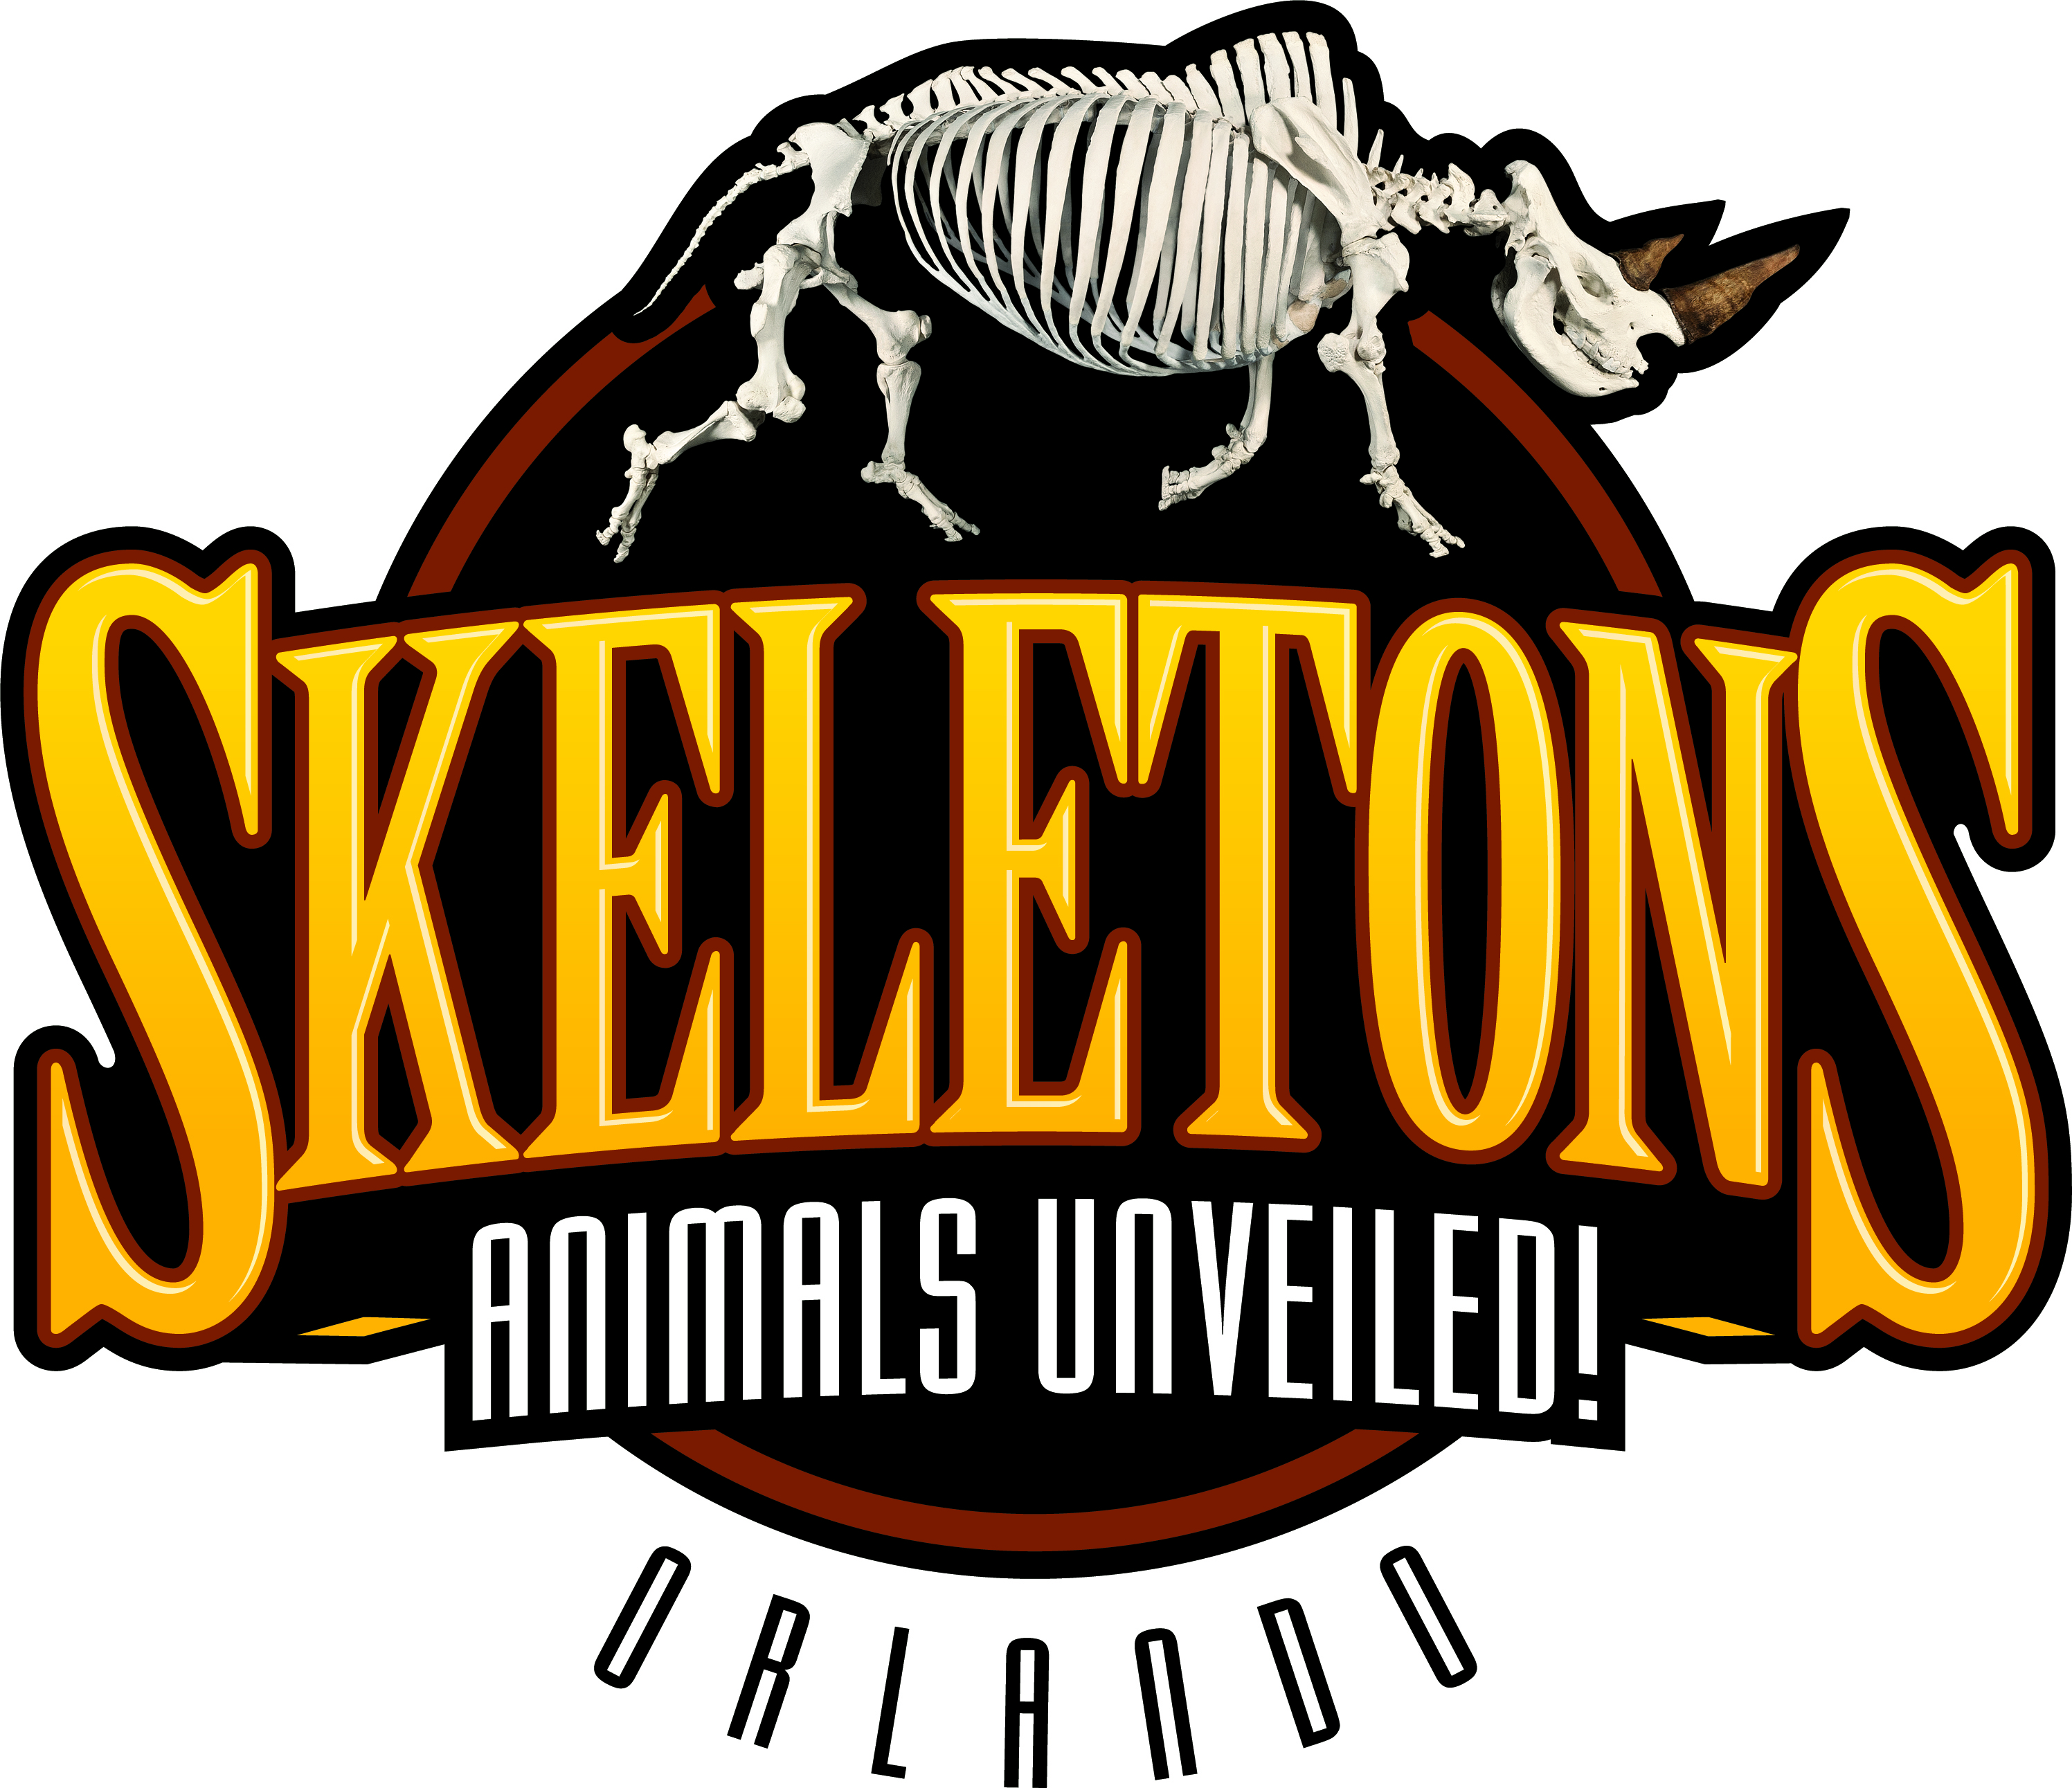 Skeletons_Logo Color